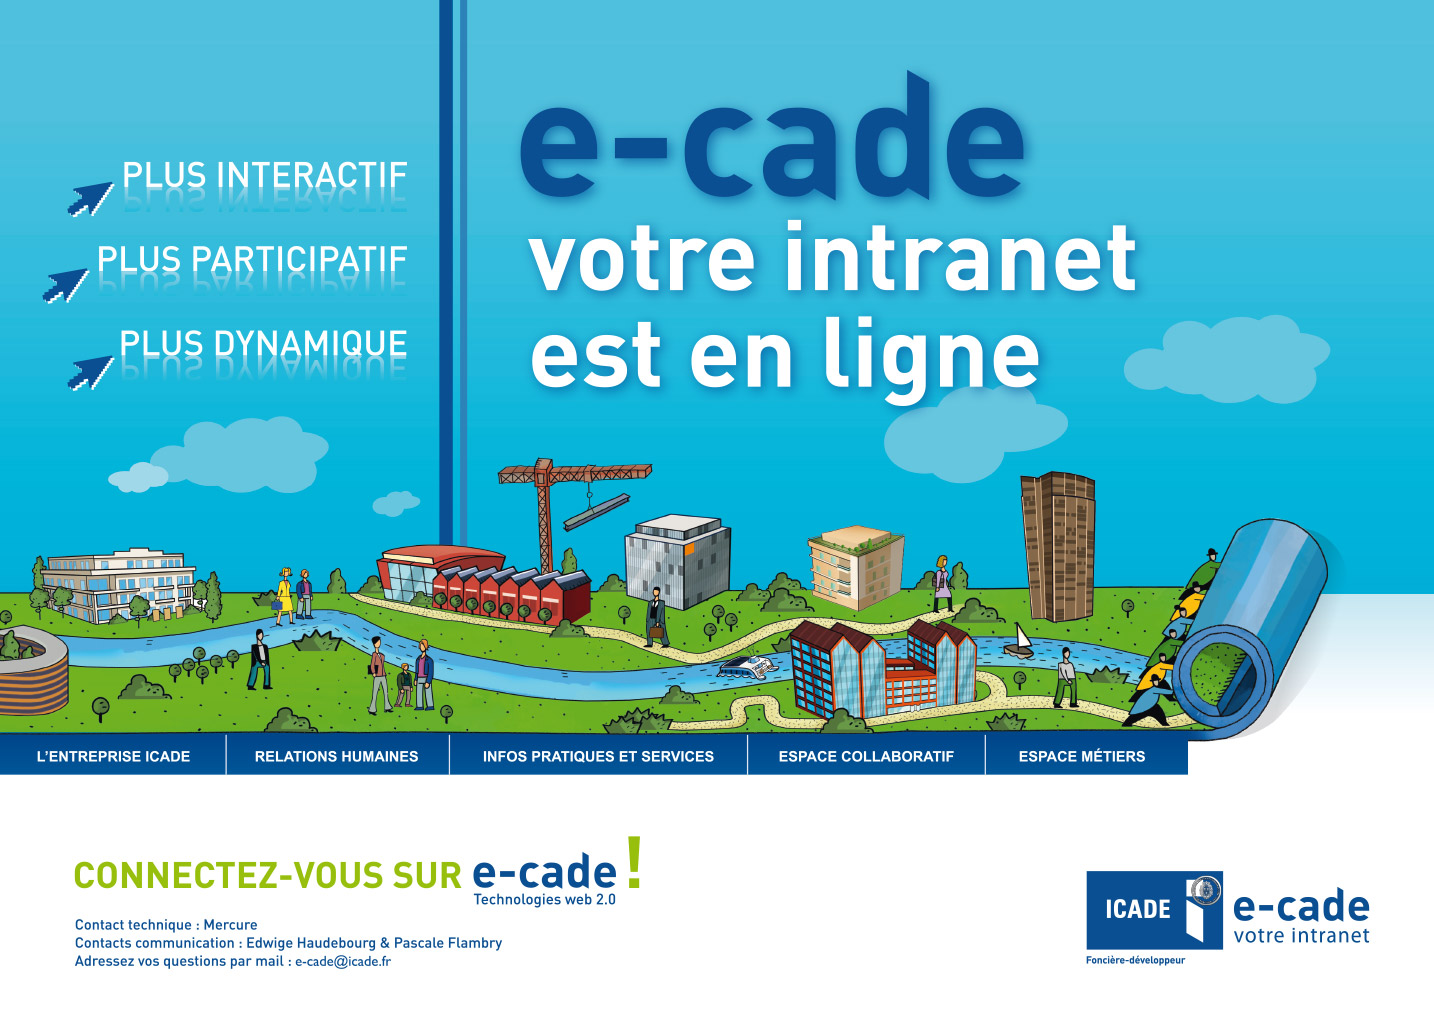 © Thierry Palau & SQLI - Création affiche Icade